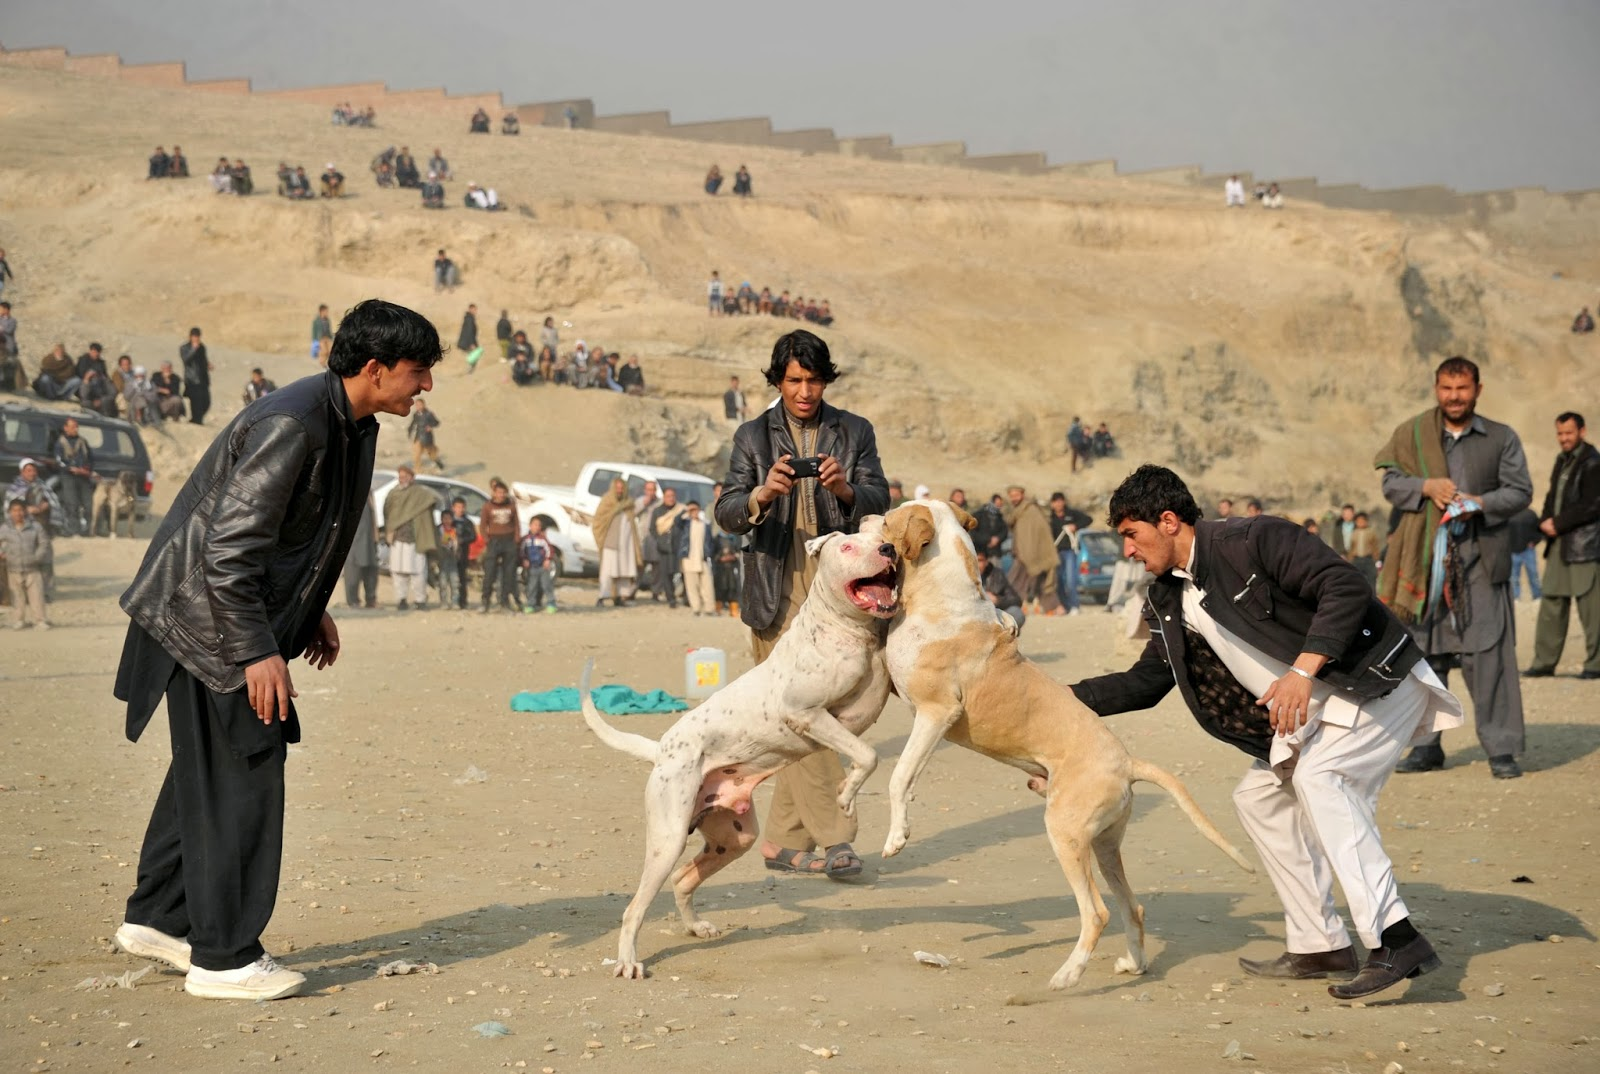 Afghanistan, Animals, Animals Fight, Banned, Comeback, Dog, Dogfighting, Fight, Kabul, Making, Match, Owner, Regime, Sports, Taliban,